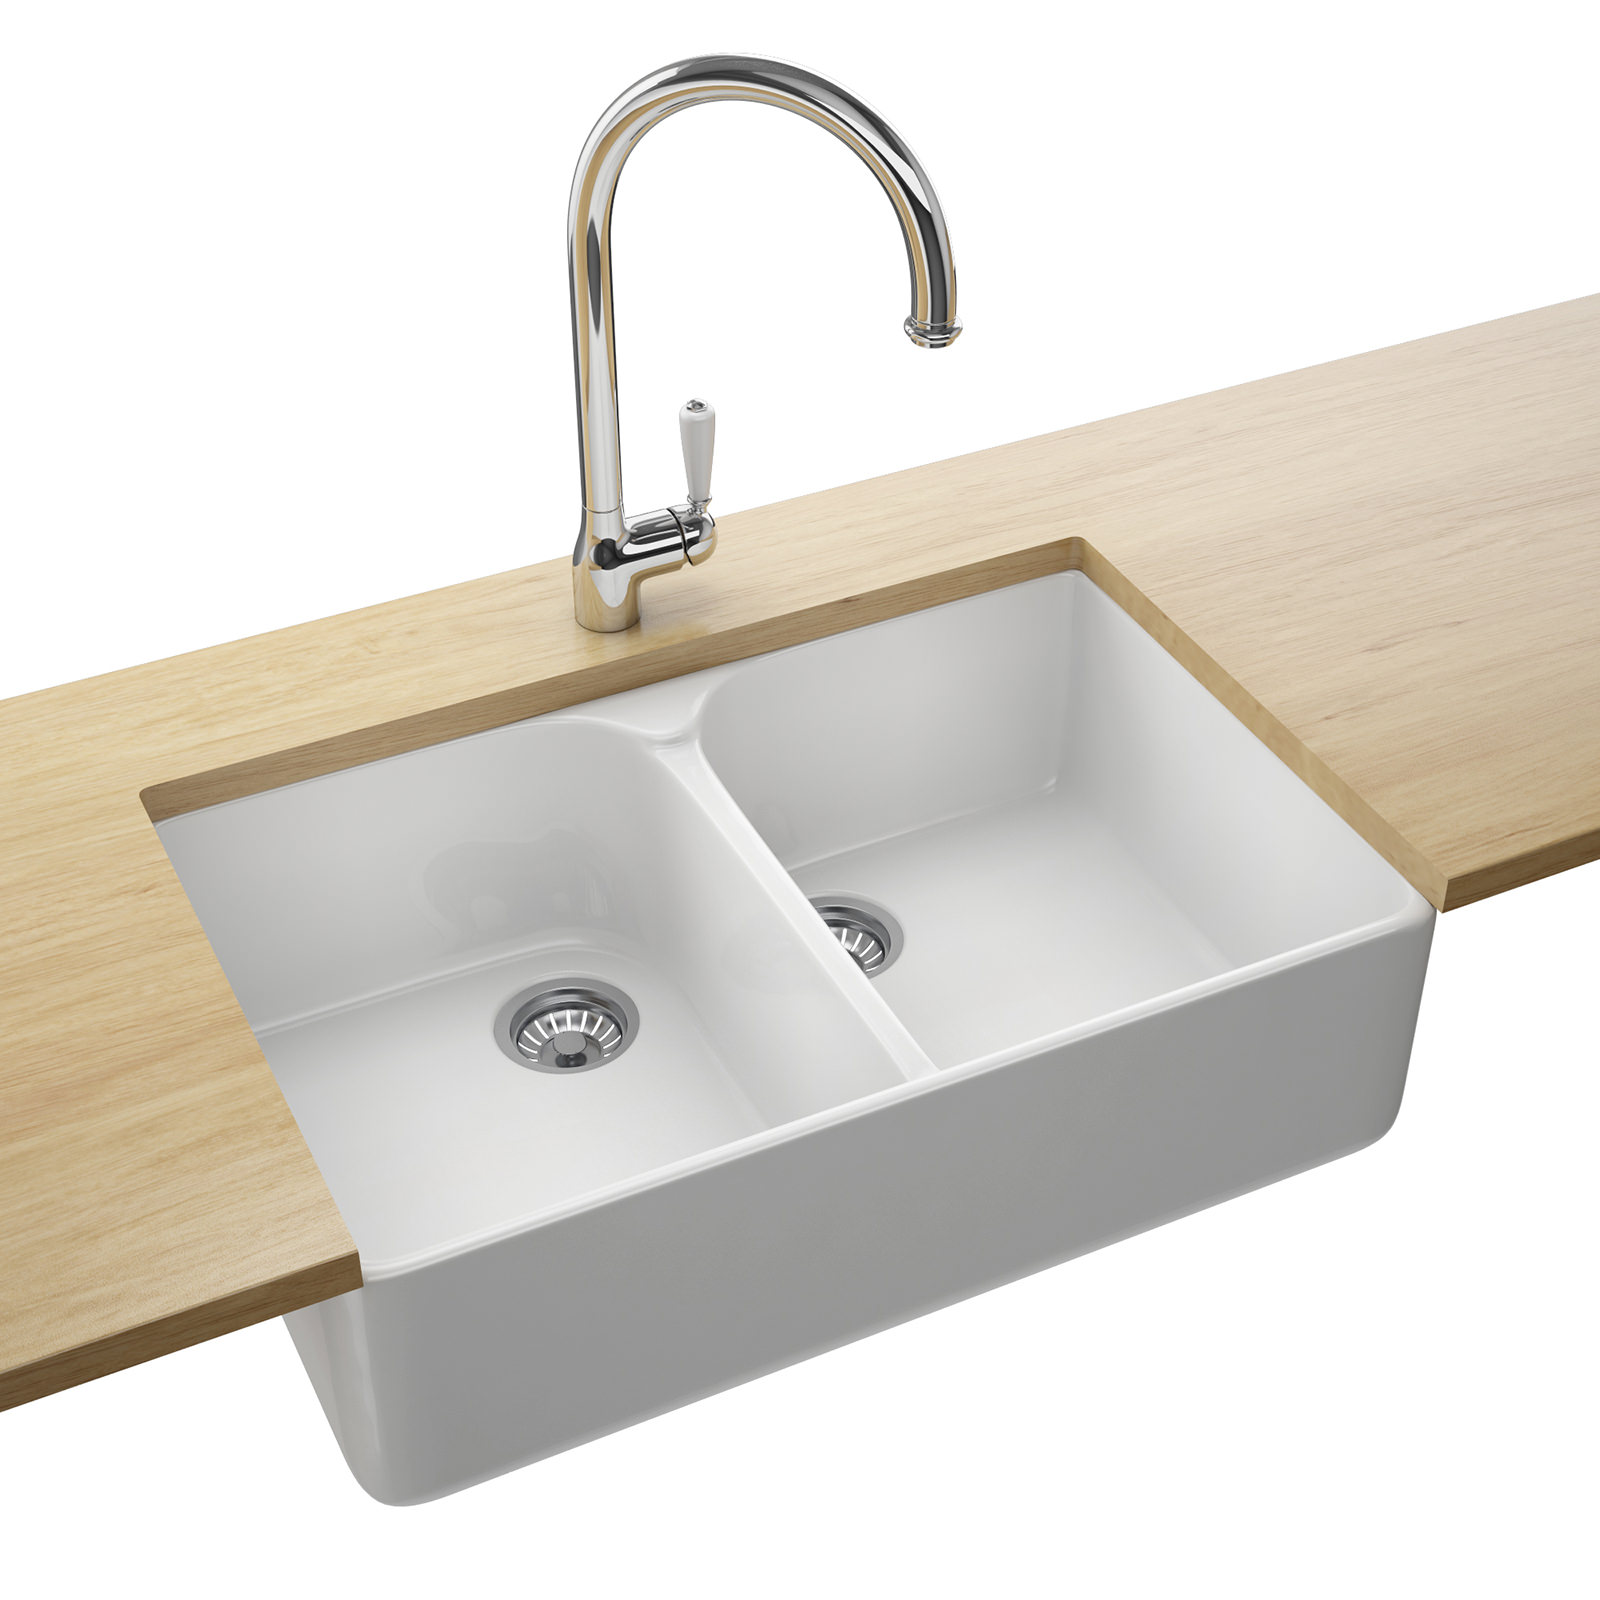 Franke Belfast VBK 720 White Ceramic 2.0 Bowl Kitchen Sink